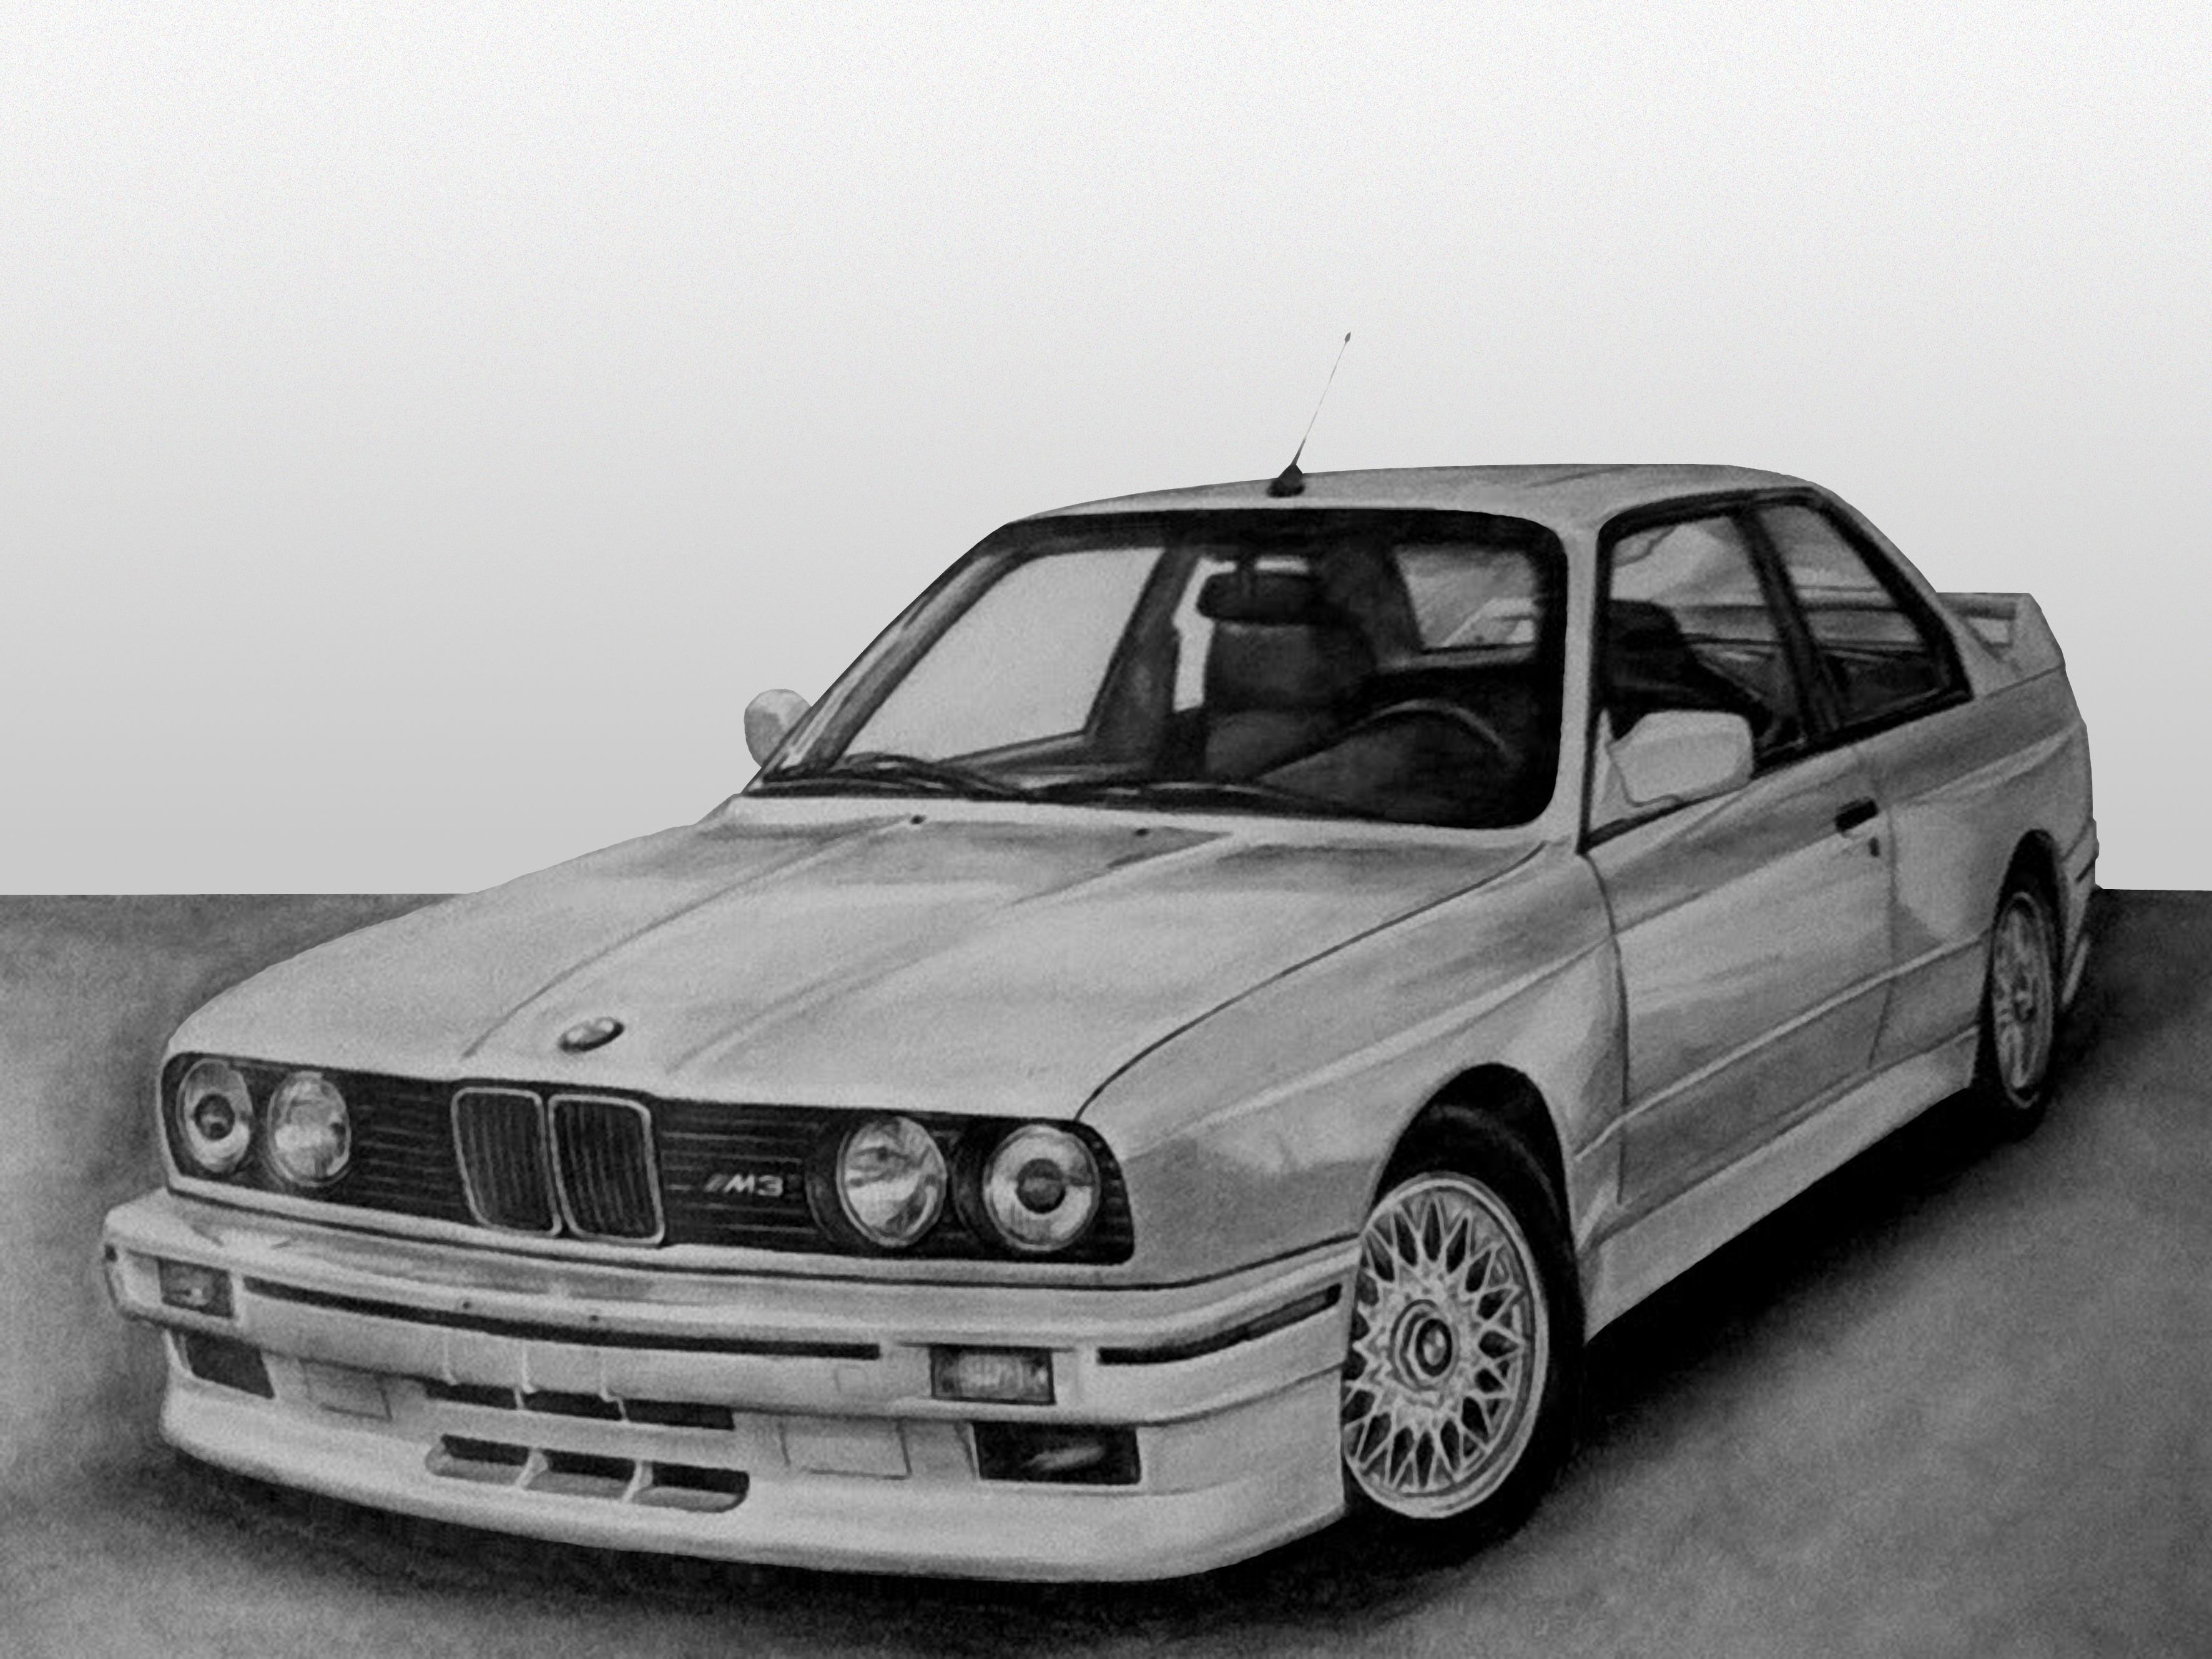 Latest E30 M3 Drawing Bmw Cars Pinterest E30 Bmw And Free Download